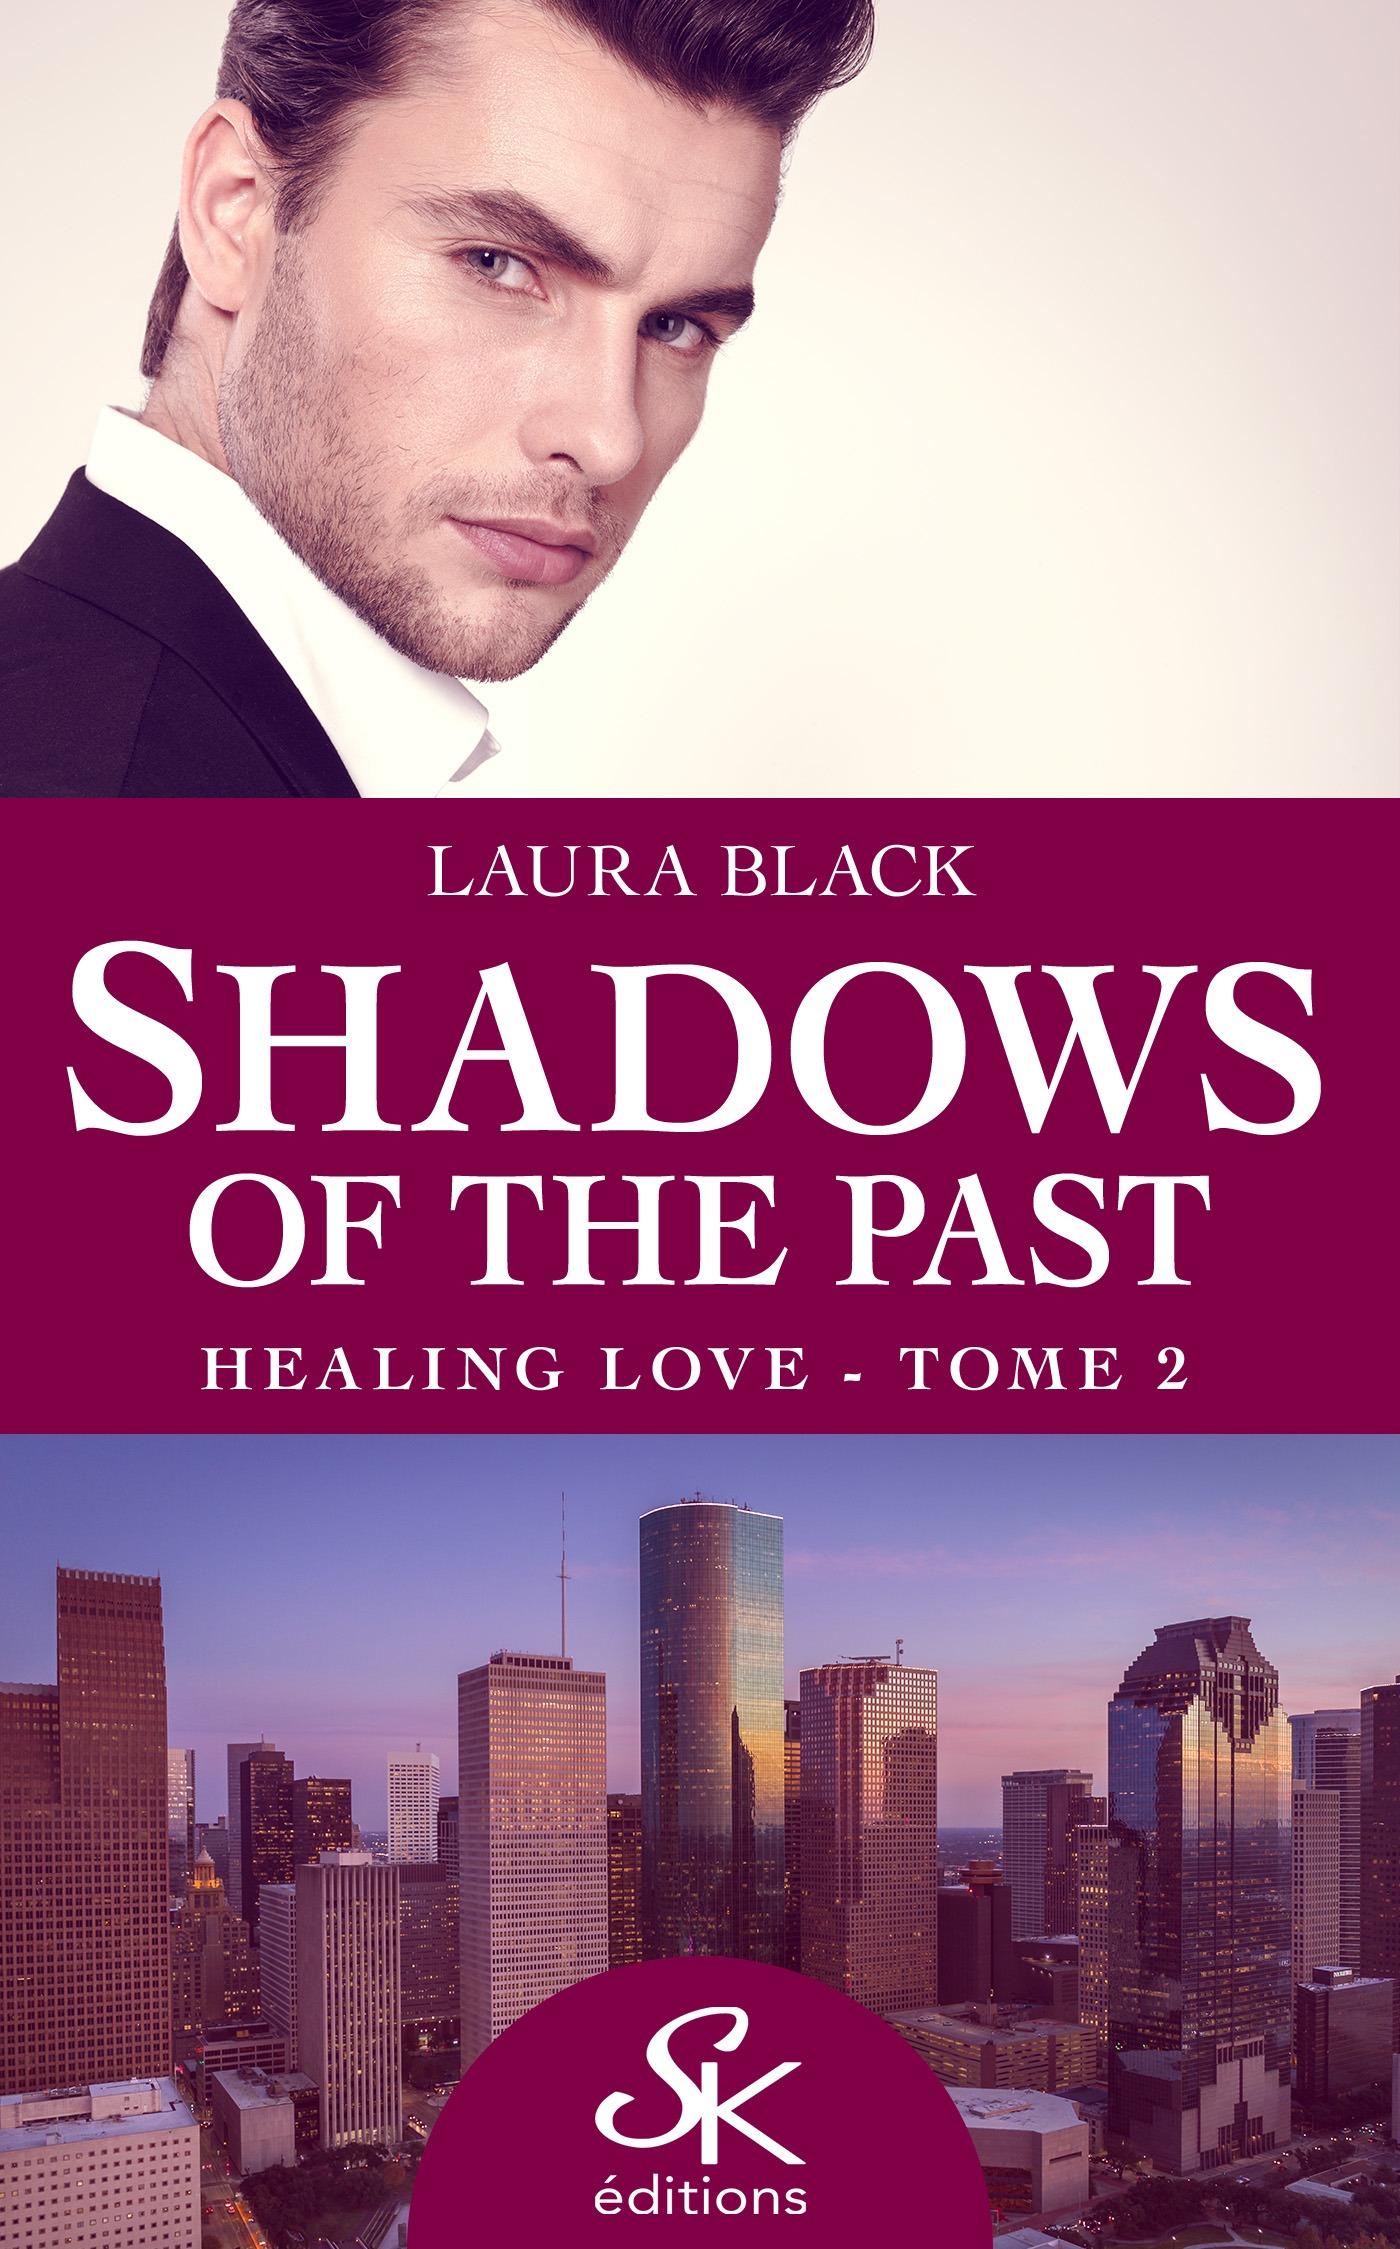 Shadows of the past 2, HEALING LOVE